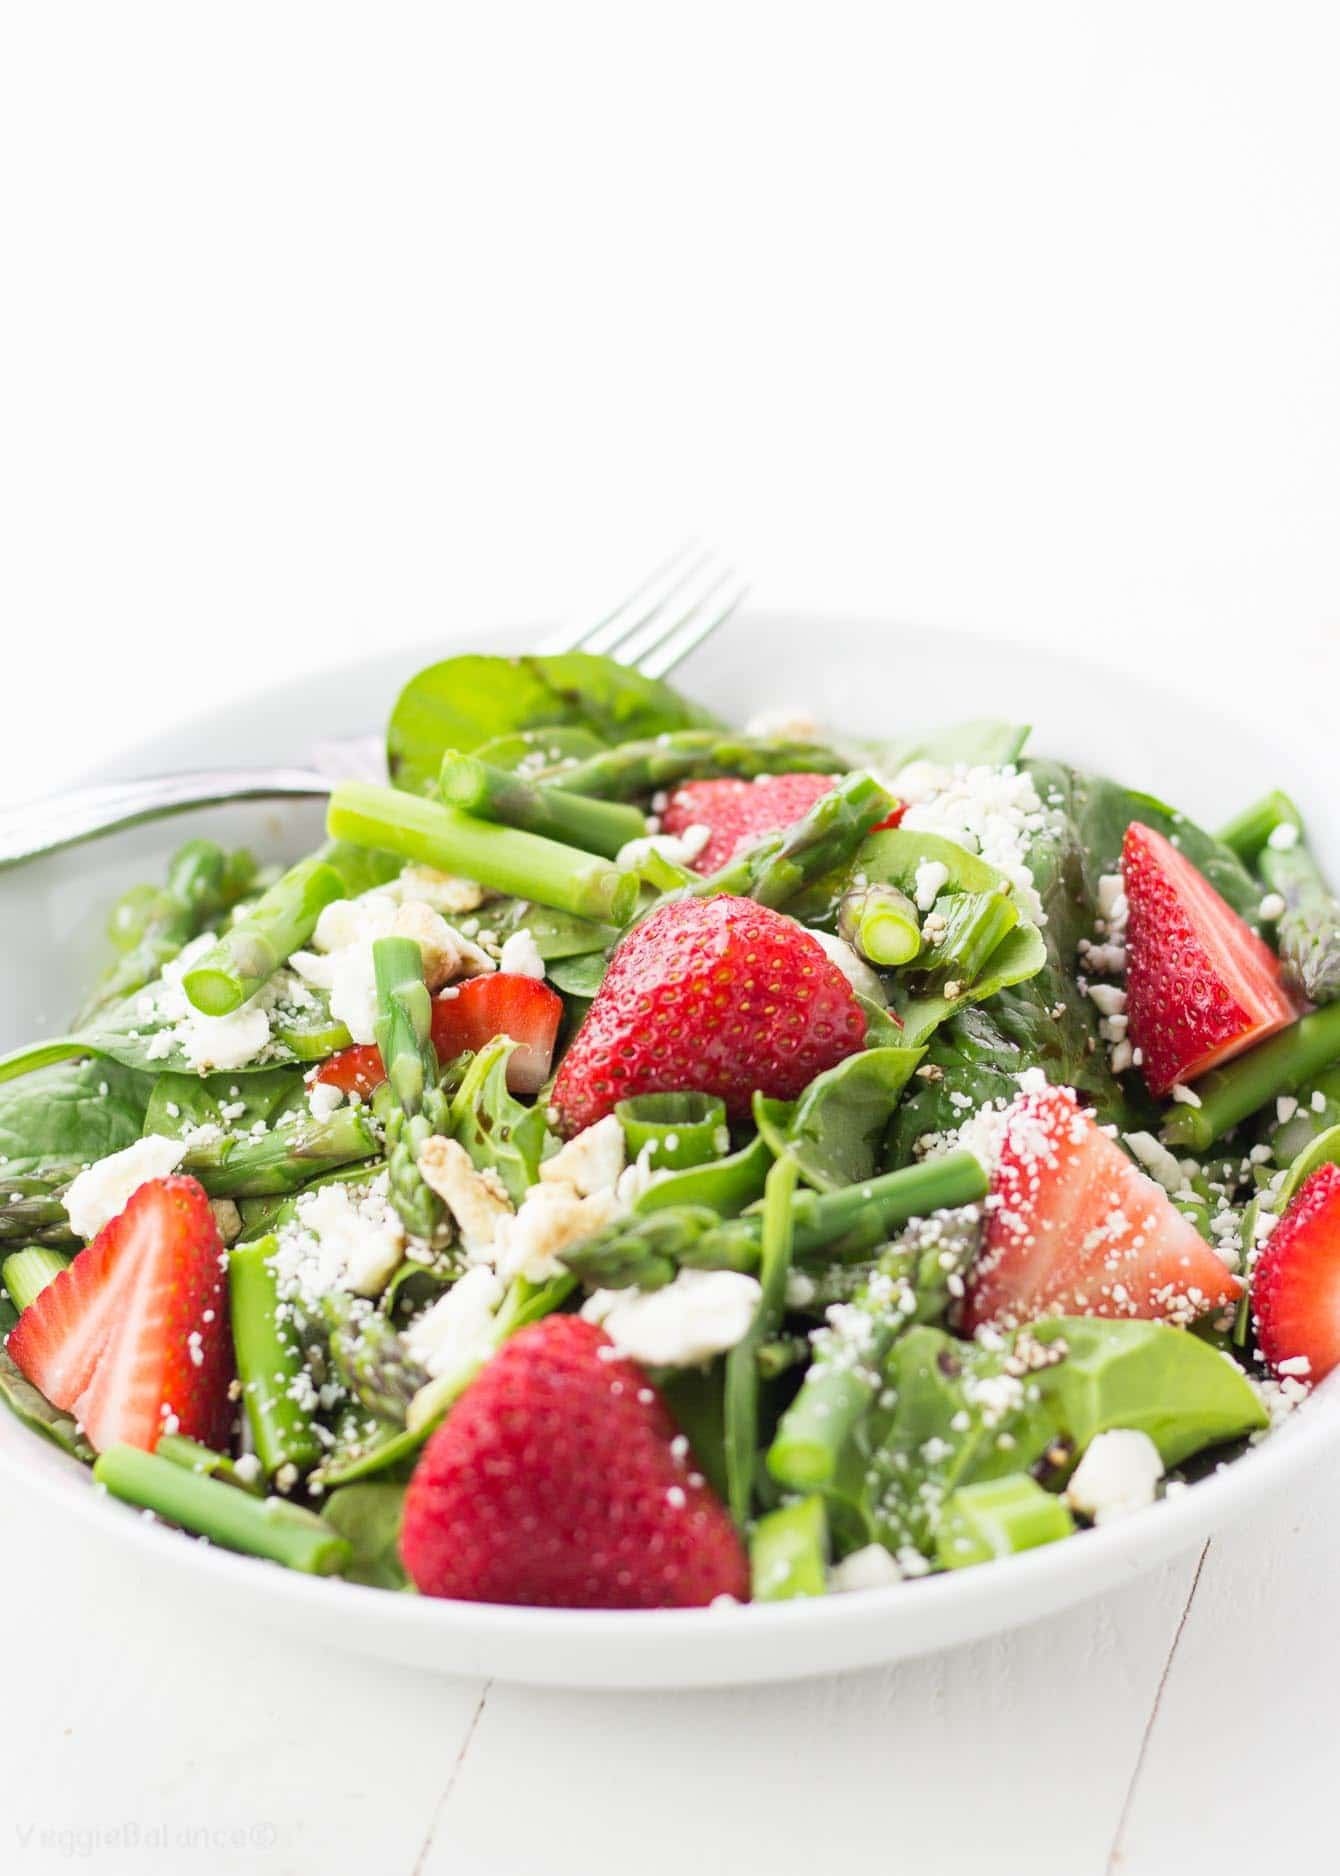 Strawberry Spinach Salad with Asparagus - Veggiebalance.com